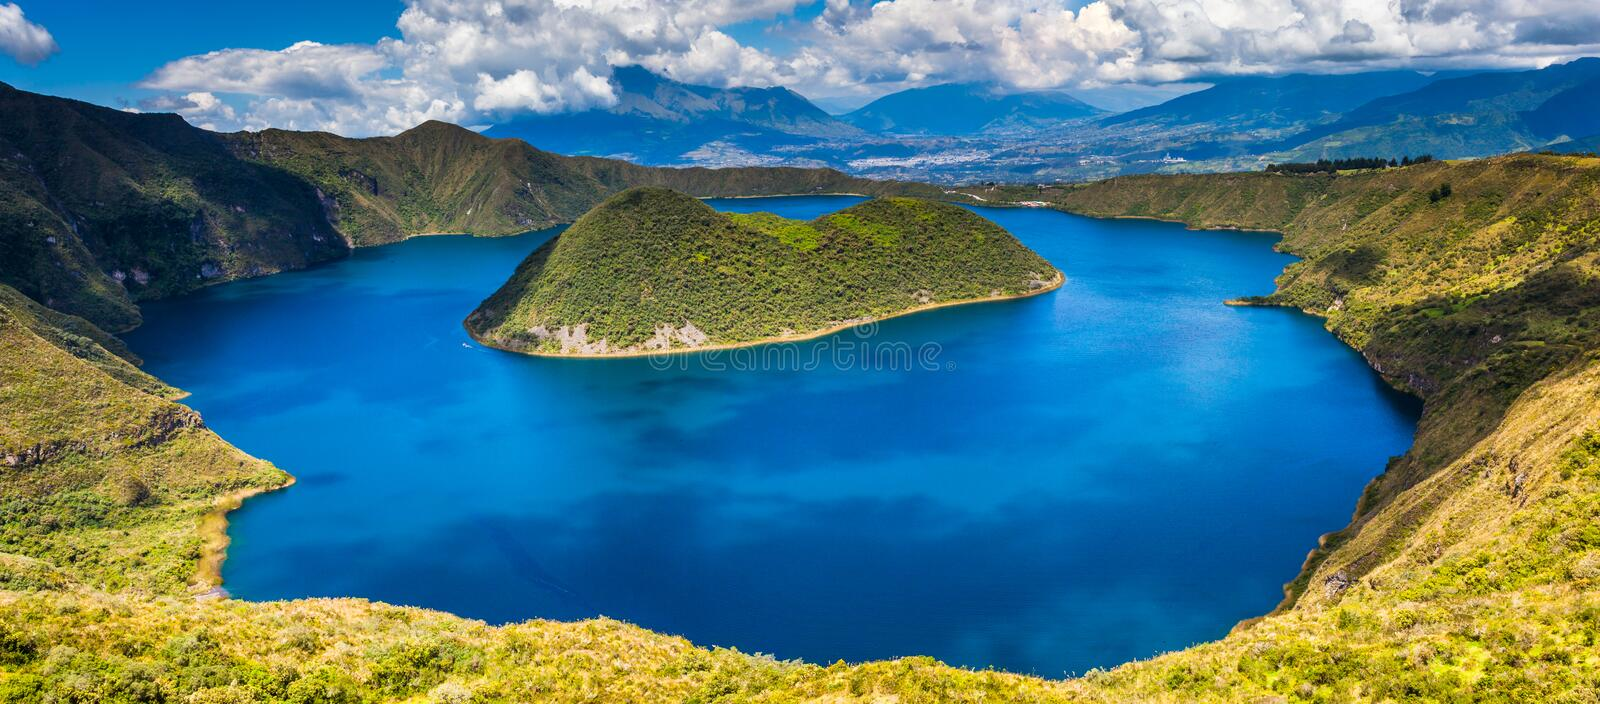 Cuicocha lagoon inside the crater of the volcano Cotacachi. Panoramic of Cuicocha, beautiful blue lagoon inside the crater of Cotacachi volcano stock images